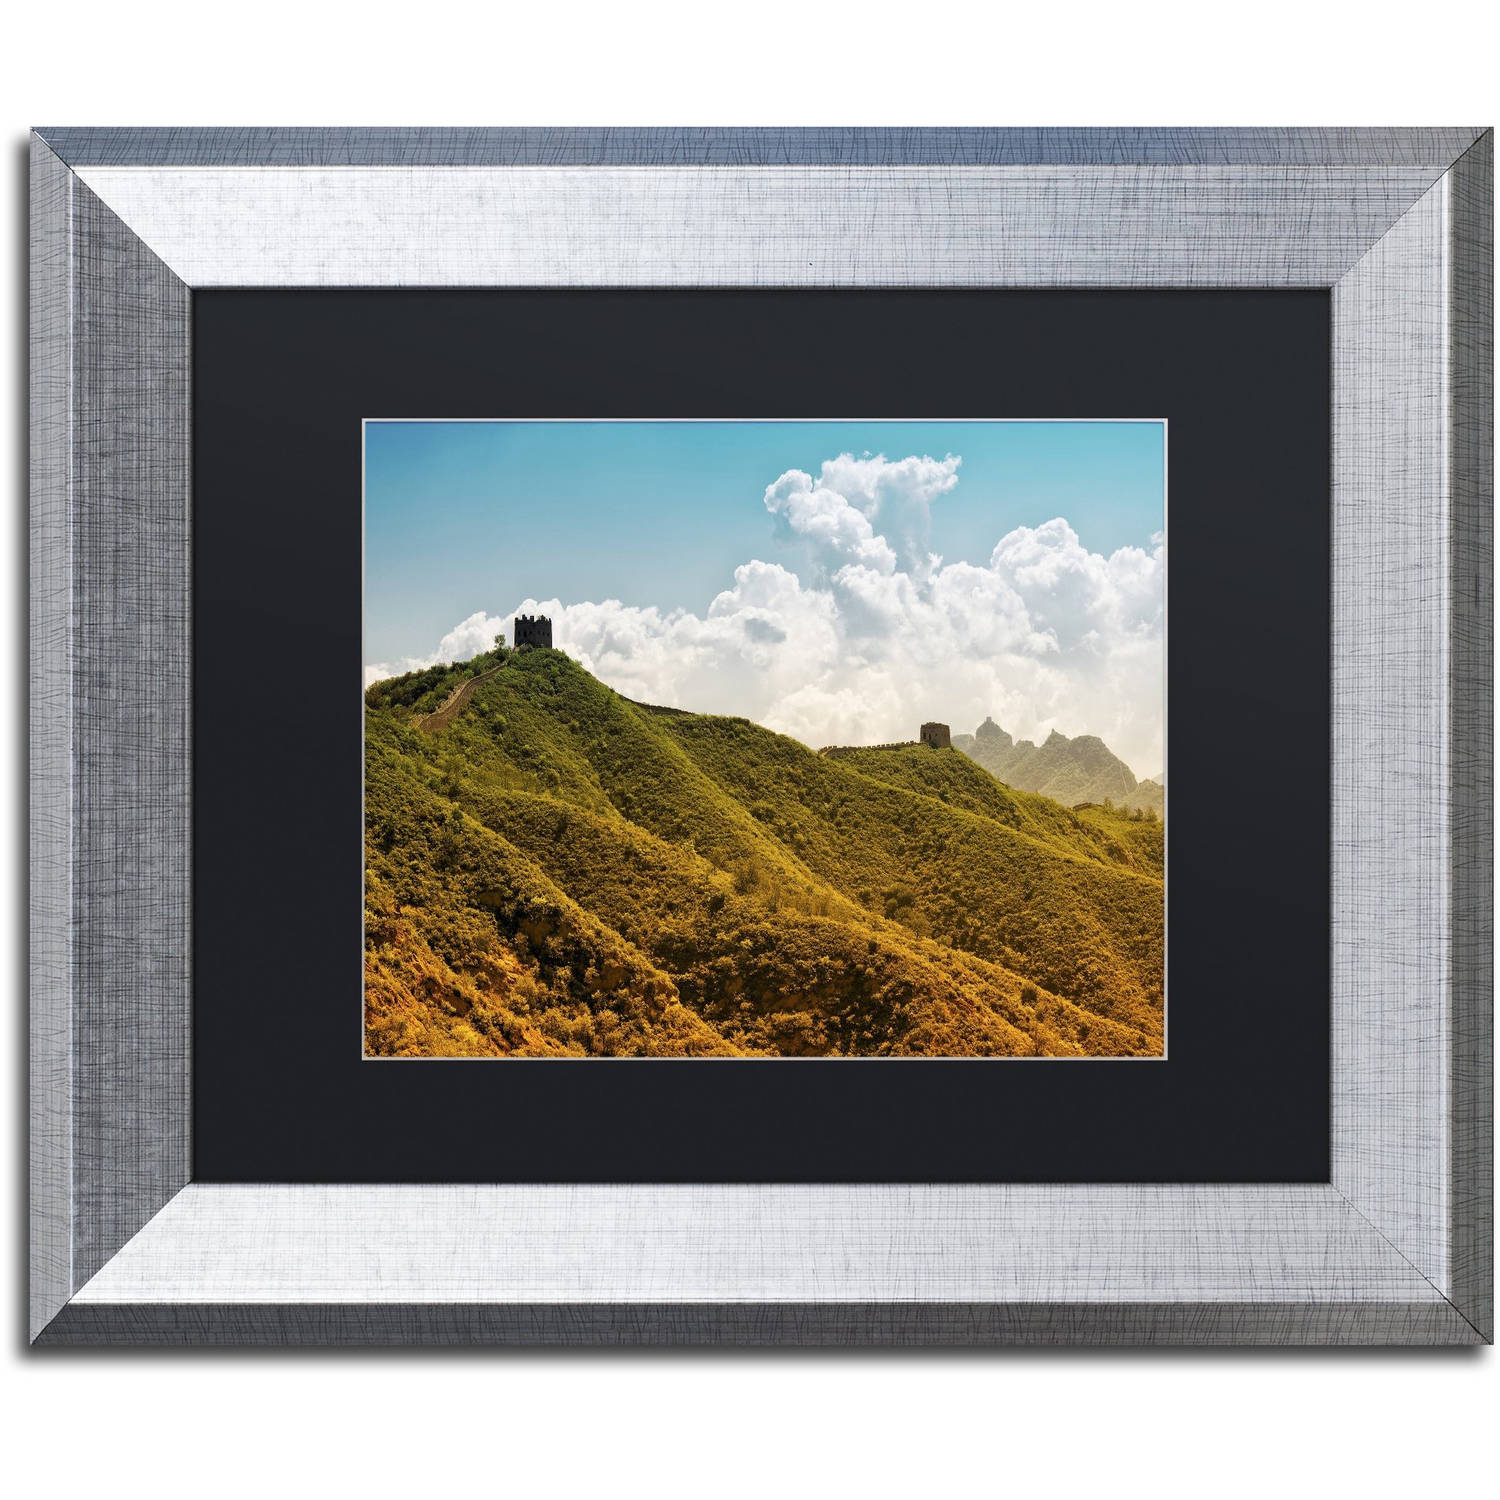 "Trademark Fine Art ""Great Wall II"" Canvas Art by Philippe Hugonnard, Black Matte, Silver Frame"